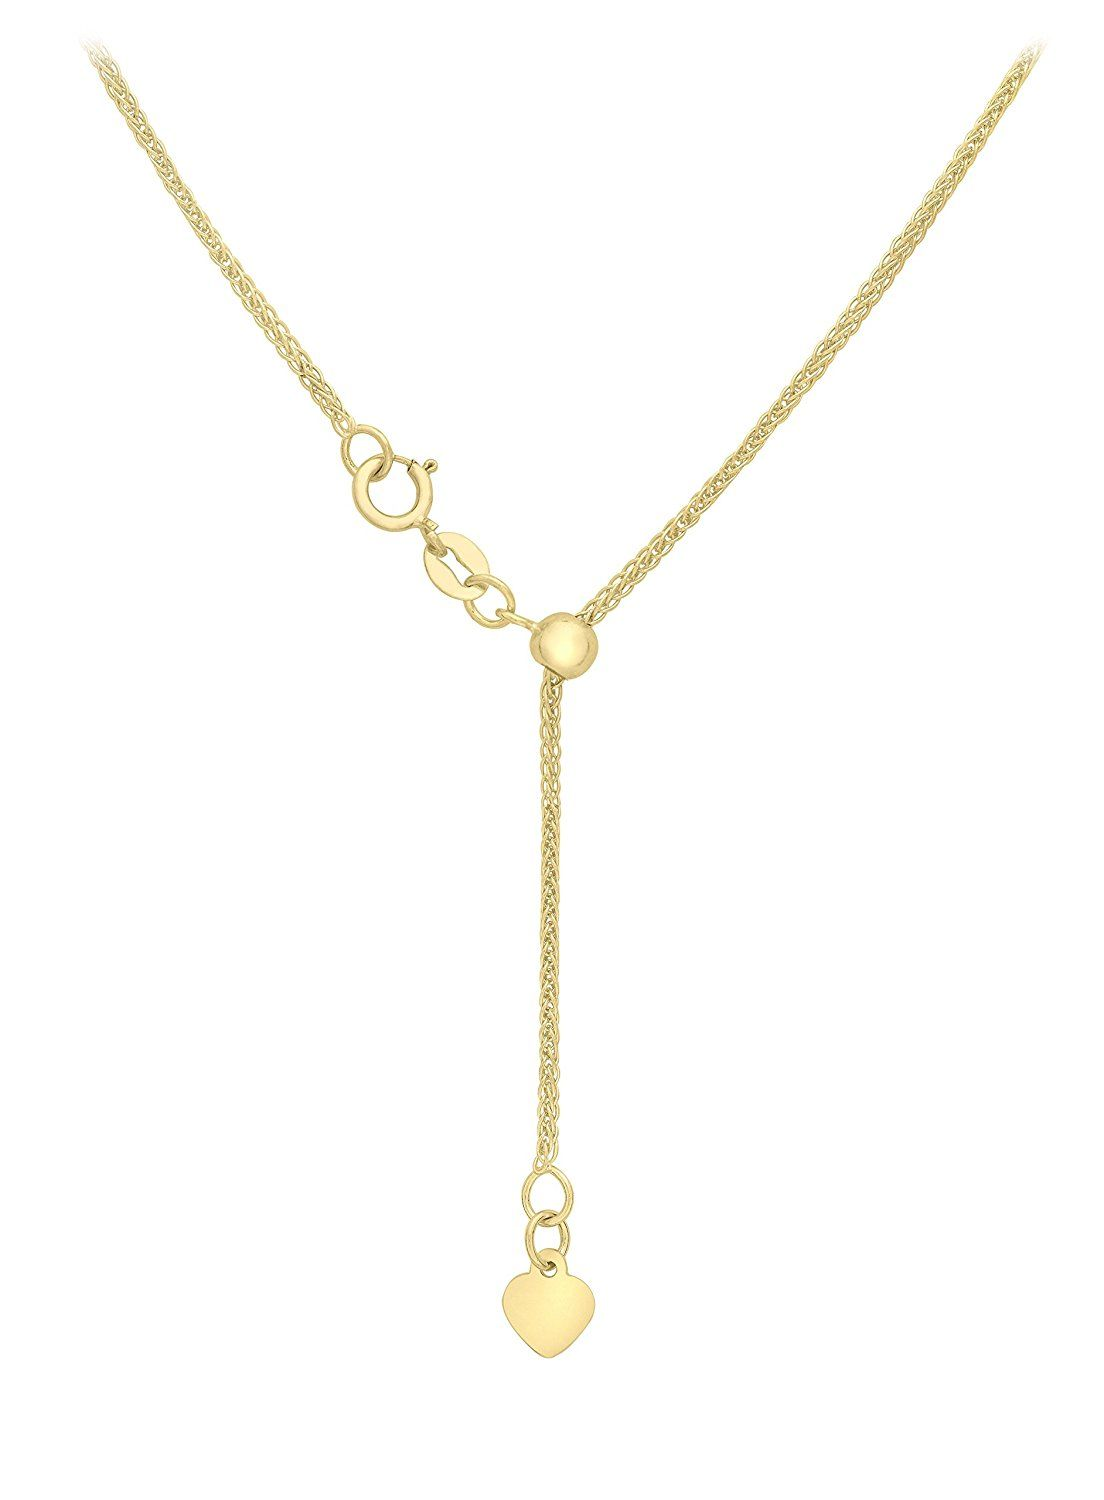 northgate gold spiga jewellers chains chain